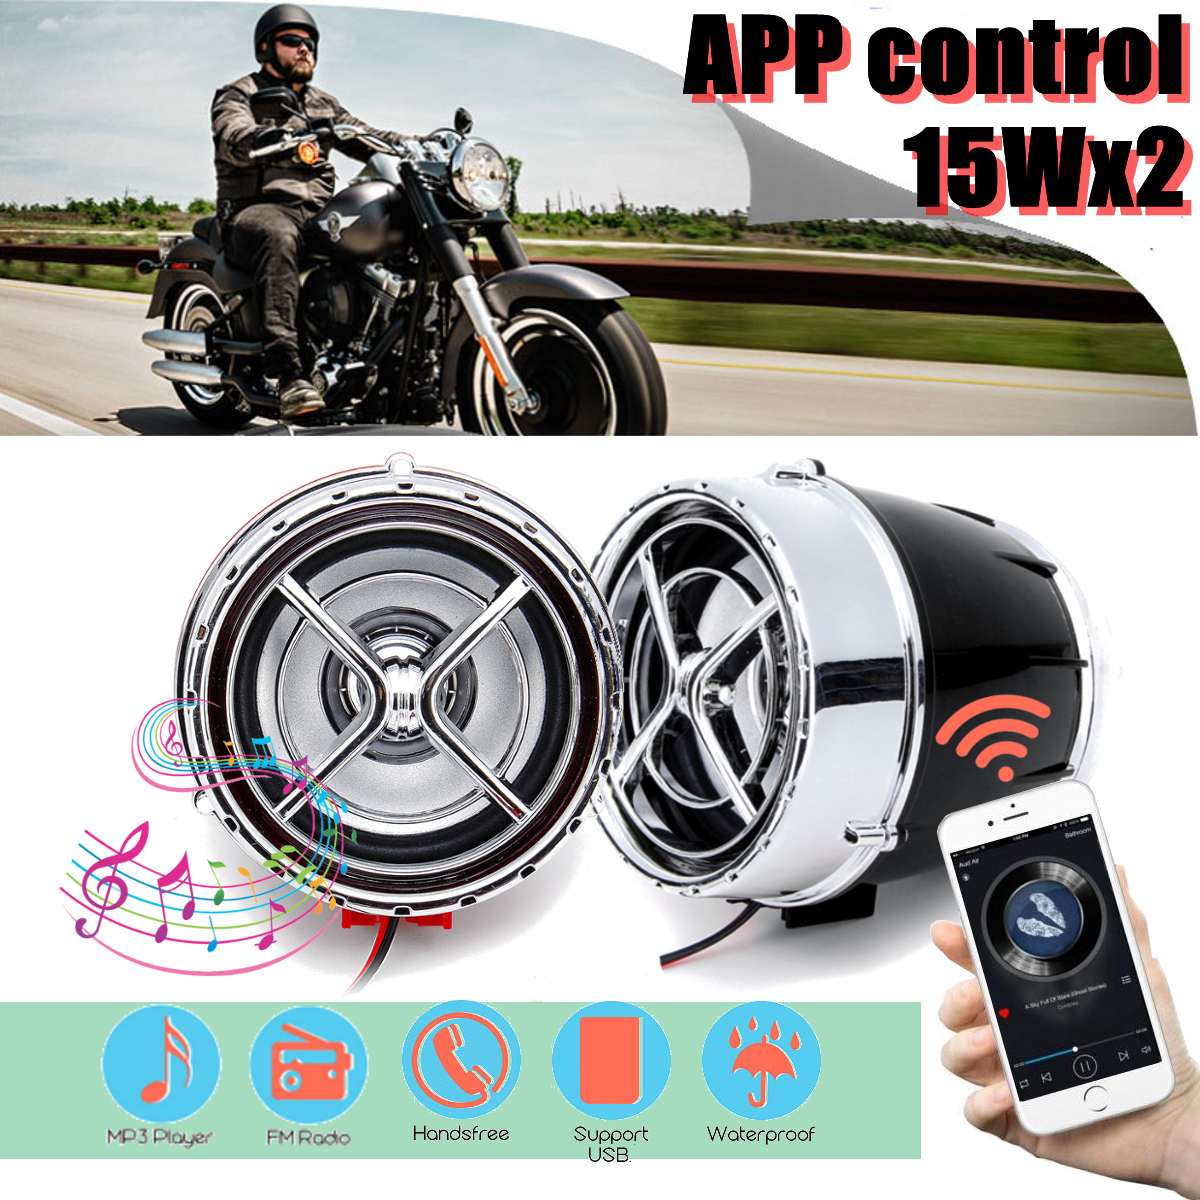 12V Pair Bluetooth Motorcycle Bike Mutilmedia MP3 Player Speakers Audio FM Radio Security Alarm Wireless APP Remote Control